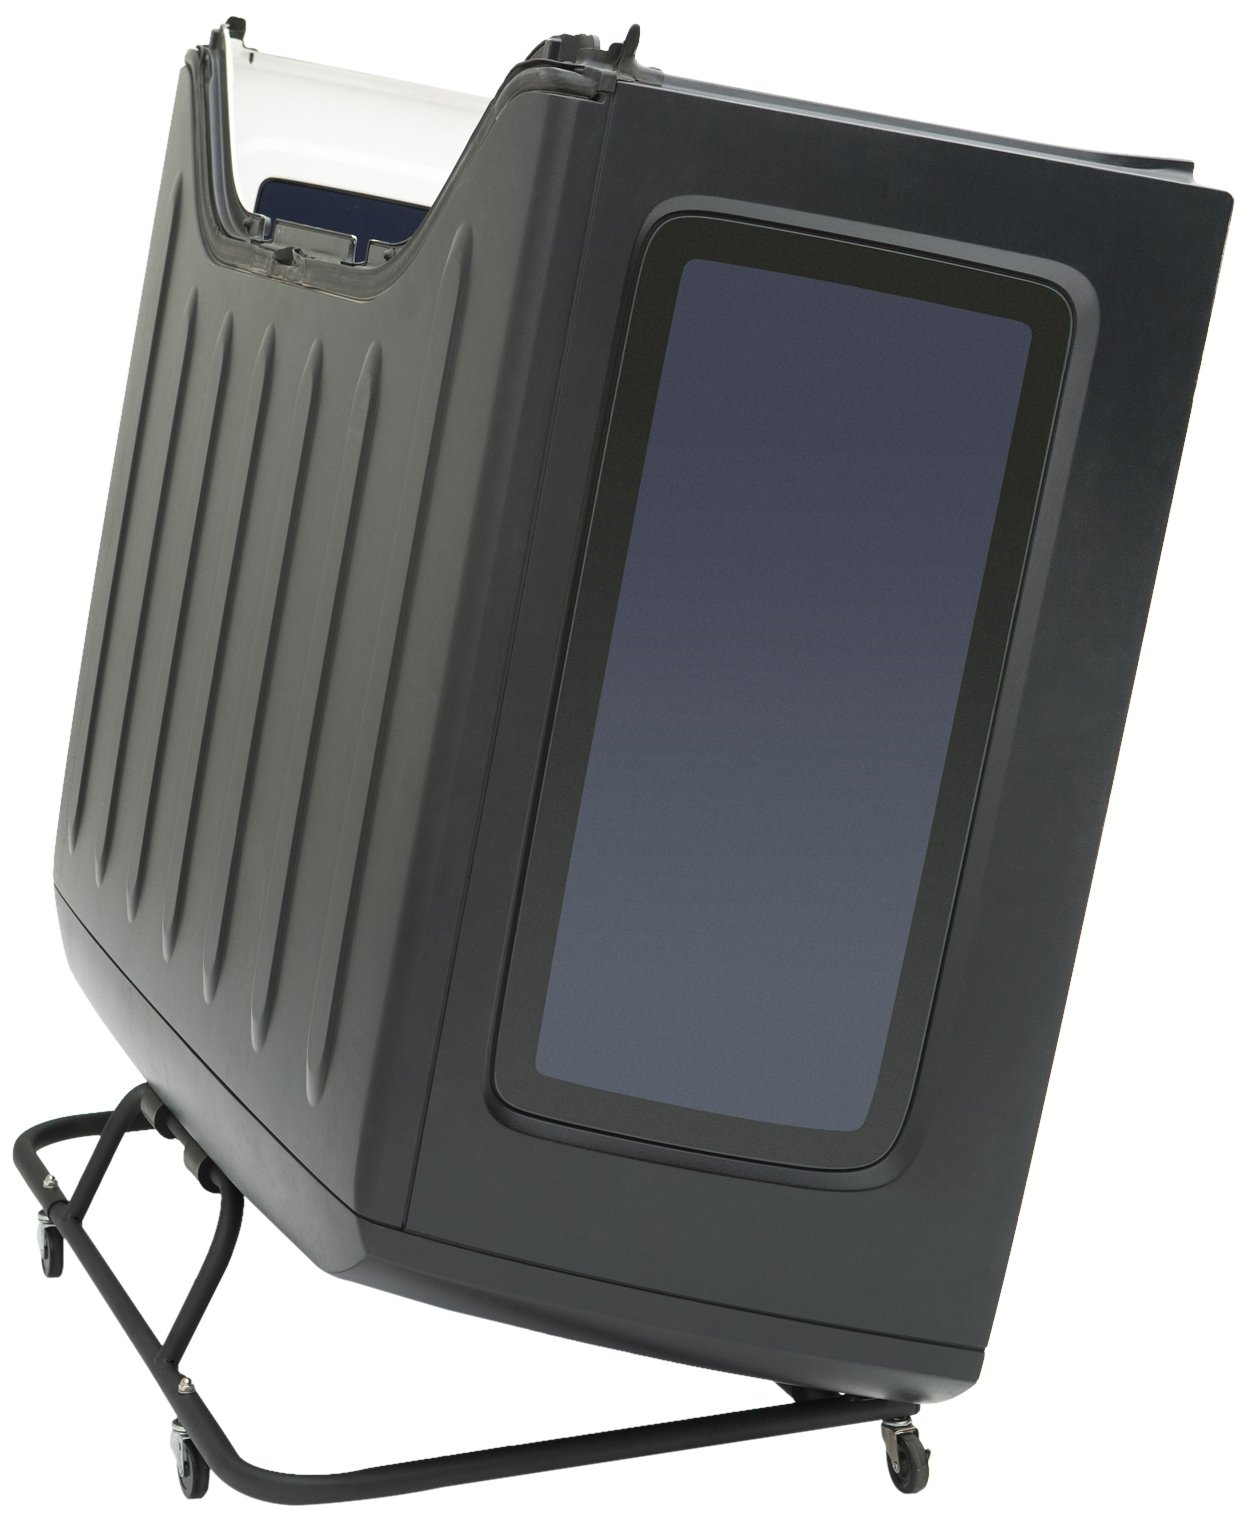 Surco HT200 Hard Top Carrier for Jeep Wrangler